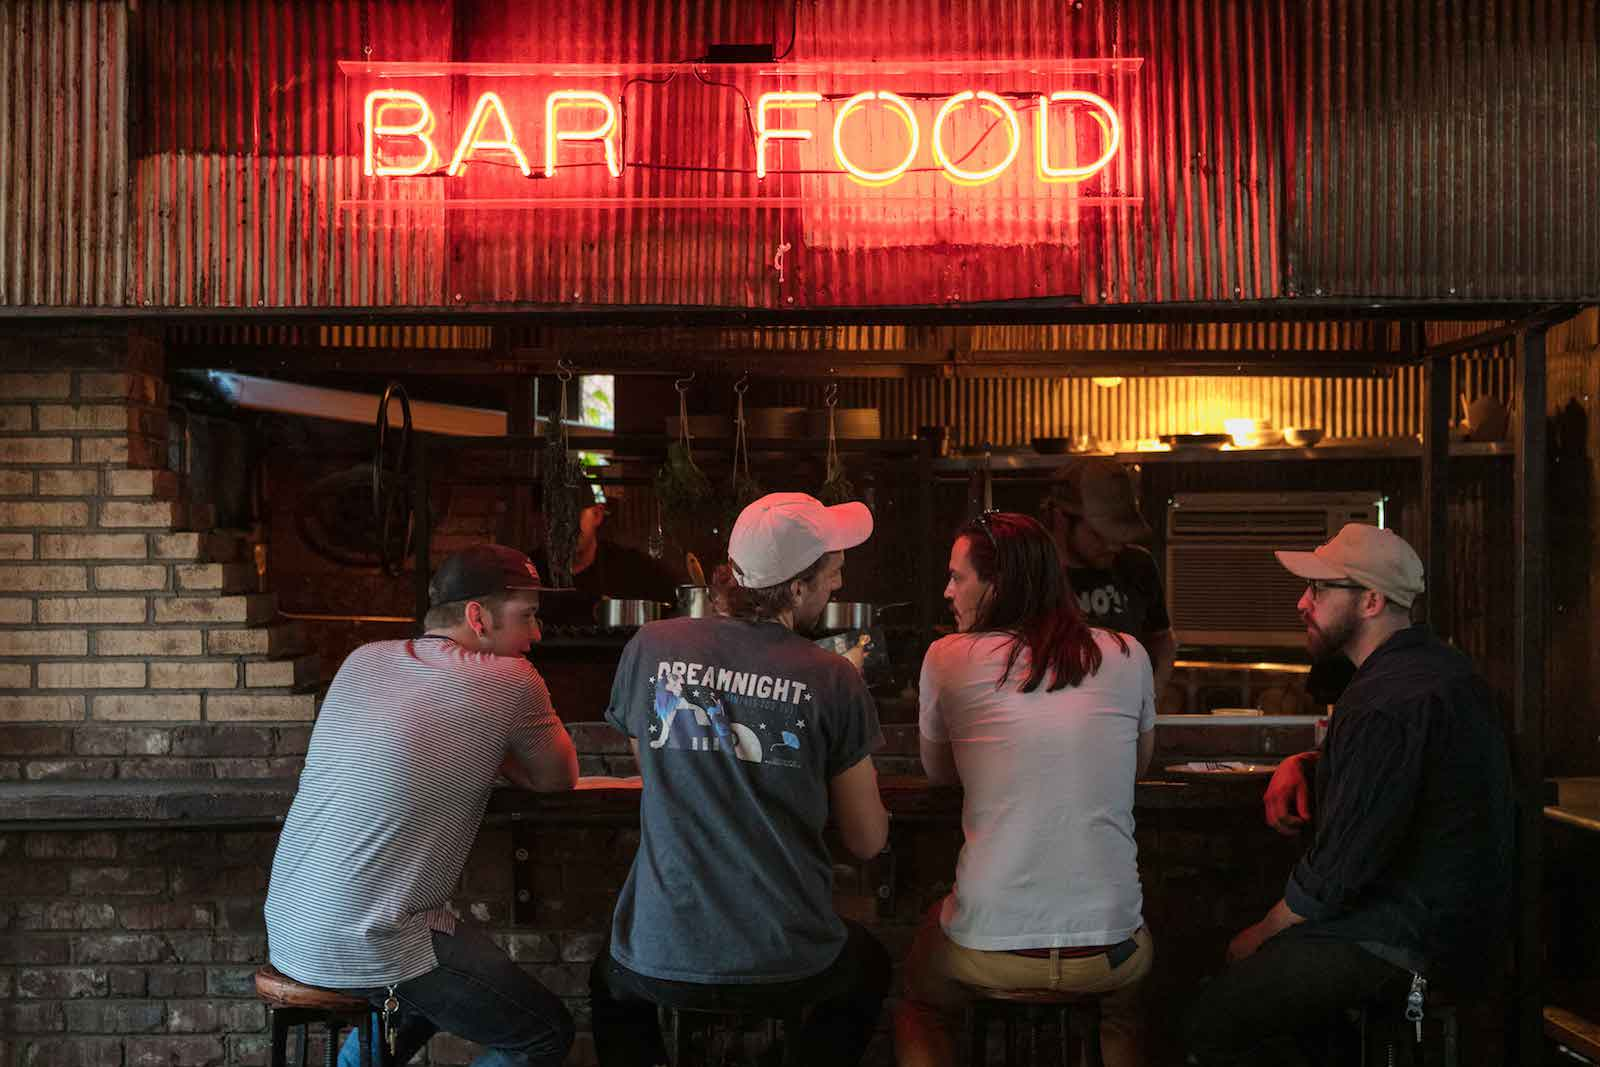 A set of three out for a night at Urban Cowboy's Public House Bar. A neon sign above the bar stools reads